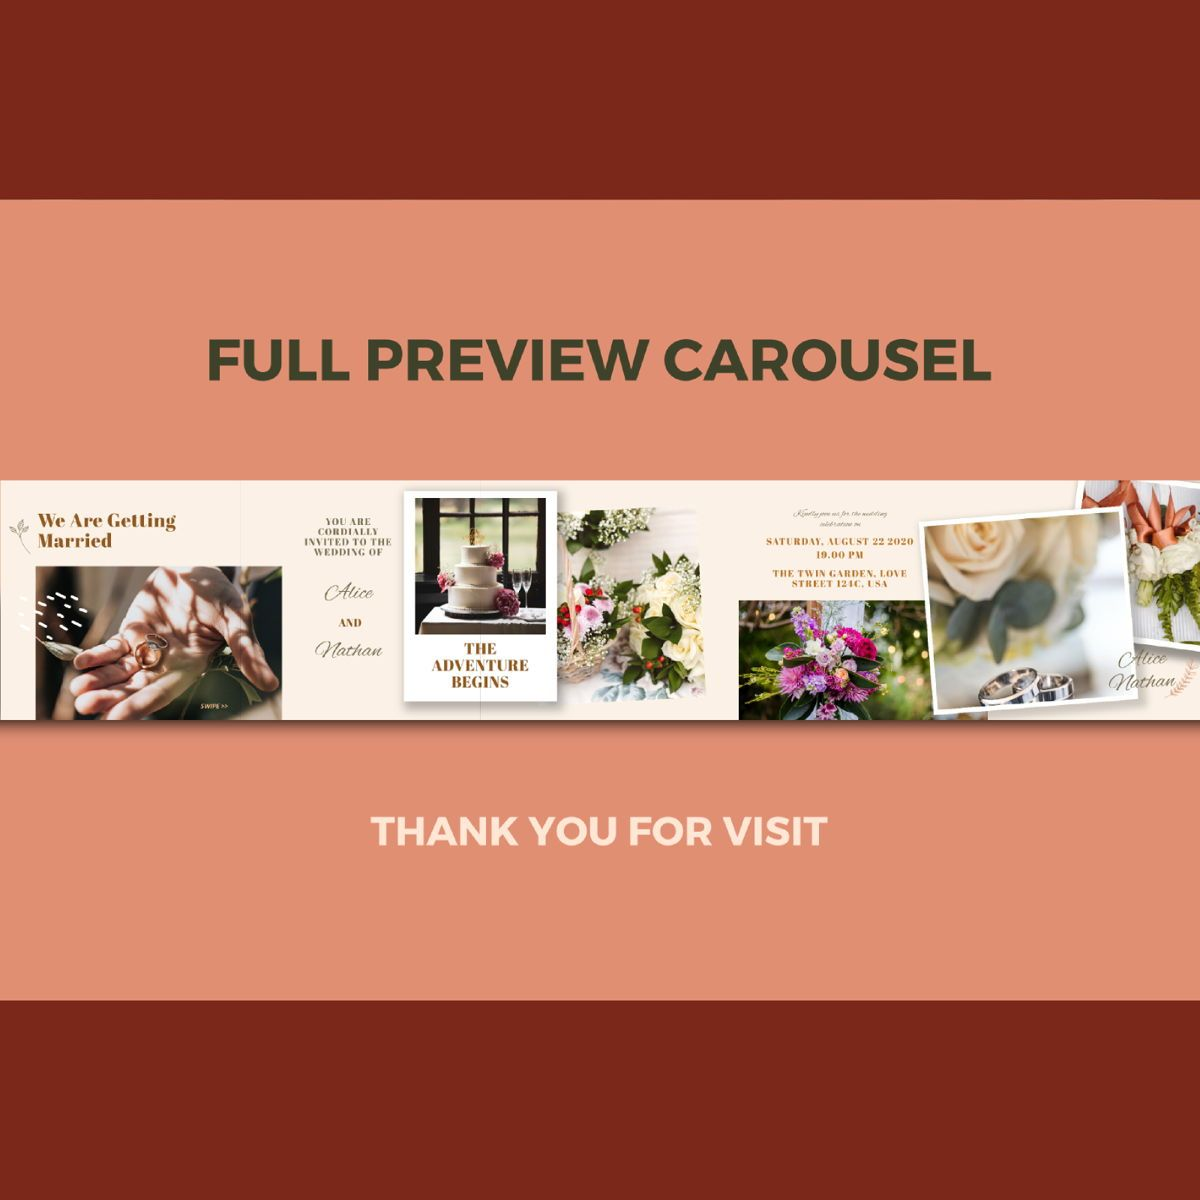 Digital wedding invitation instagram carousel powerpoint template, Slide 3, 07138, Infographics — PoweredTemplate.com